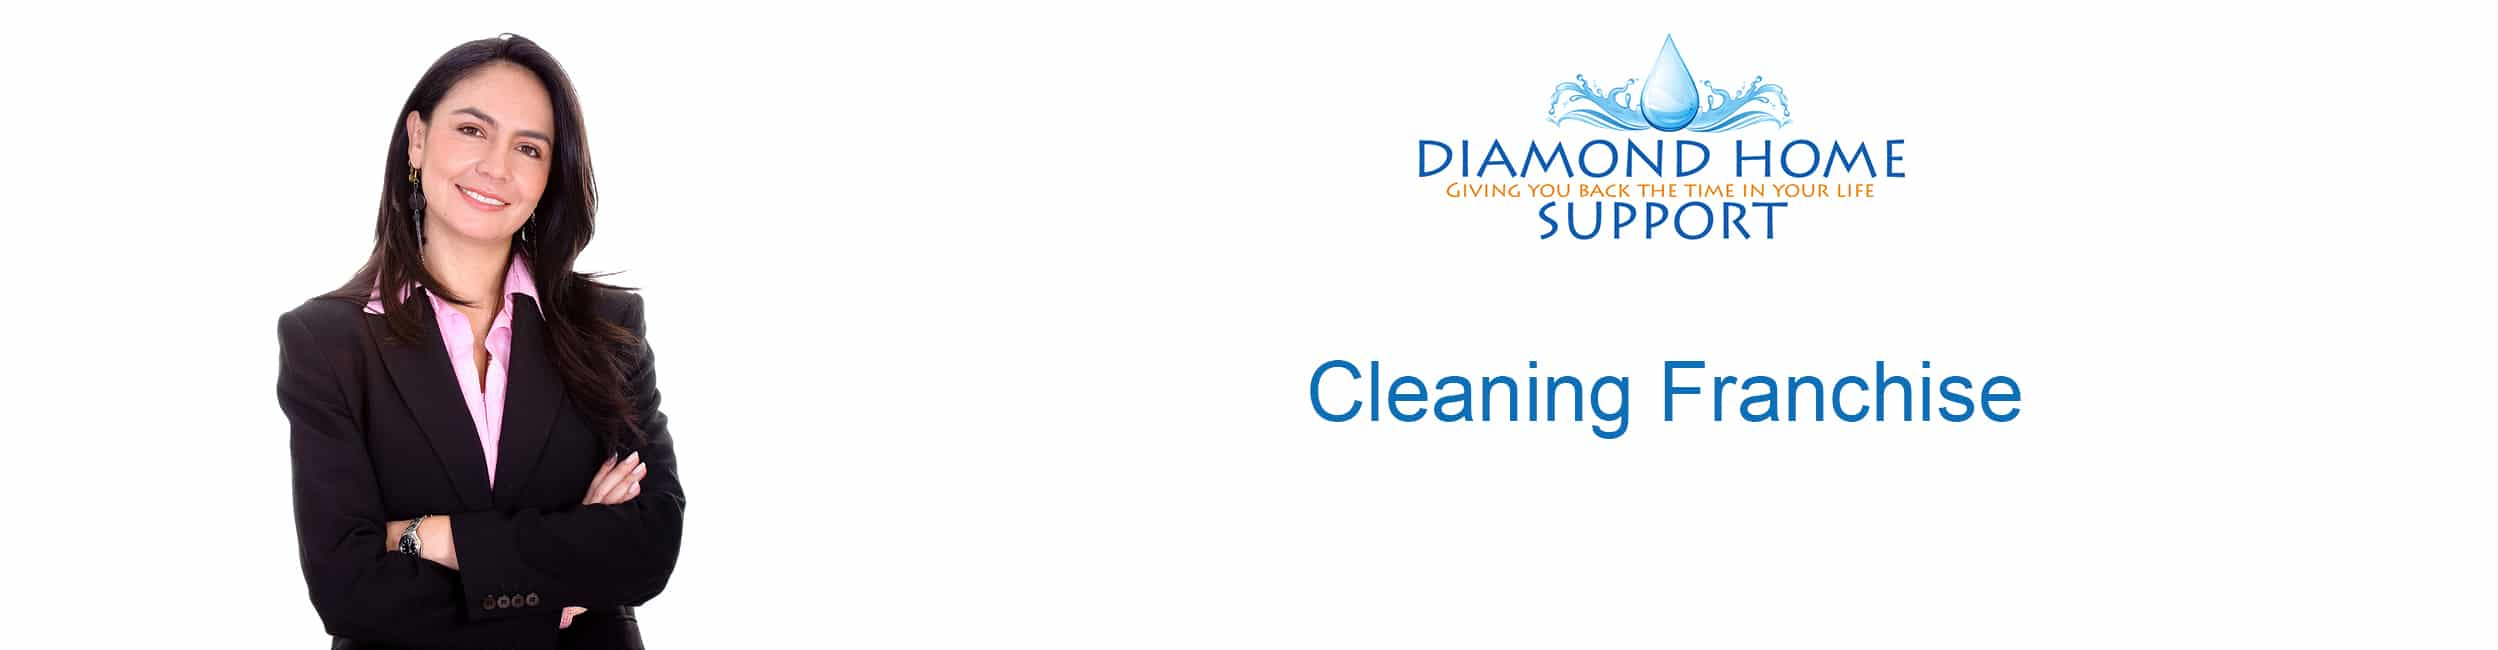 Diamond Home Support Domestic Cleaning Franchise Earning Potential